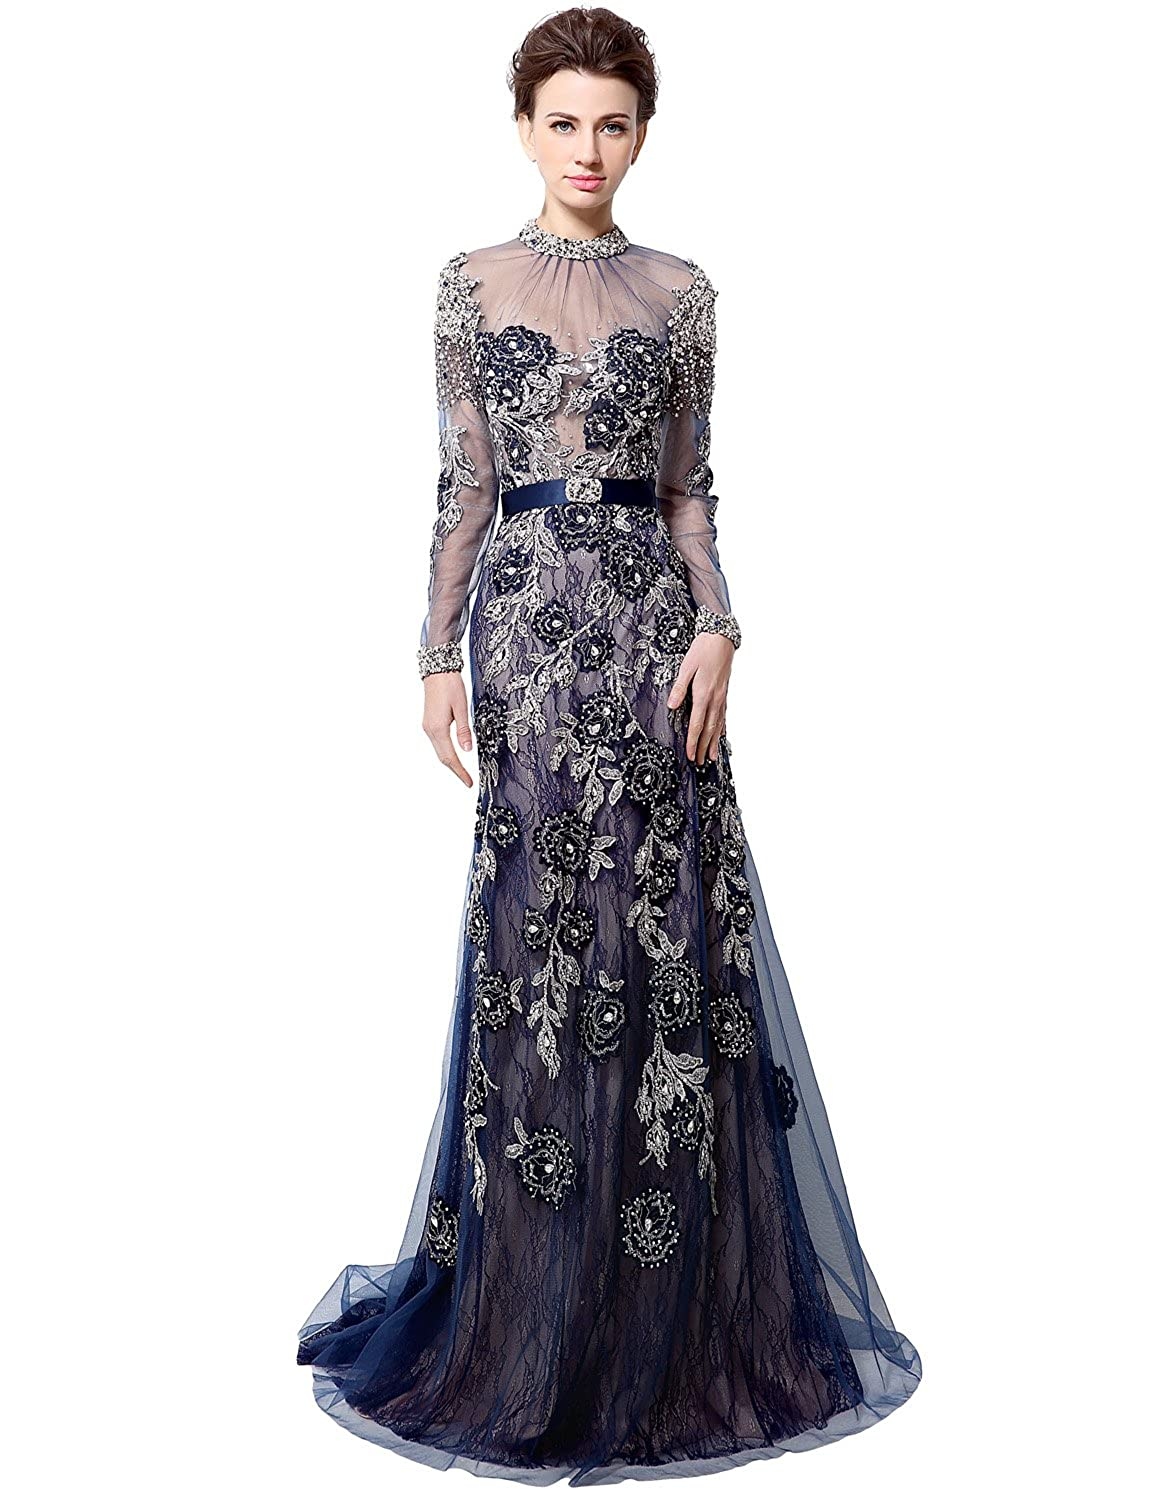 014navy bluee Sarahbridal Womens Lace Prom Dresses Formal Evening Gown with Half Sleeve SD328